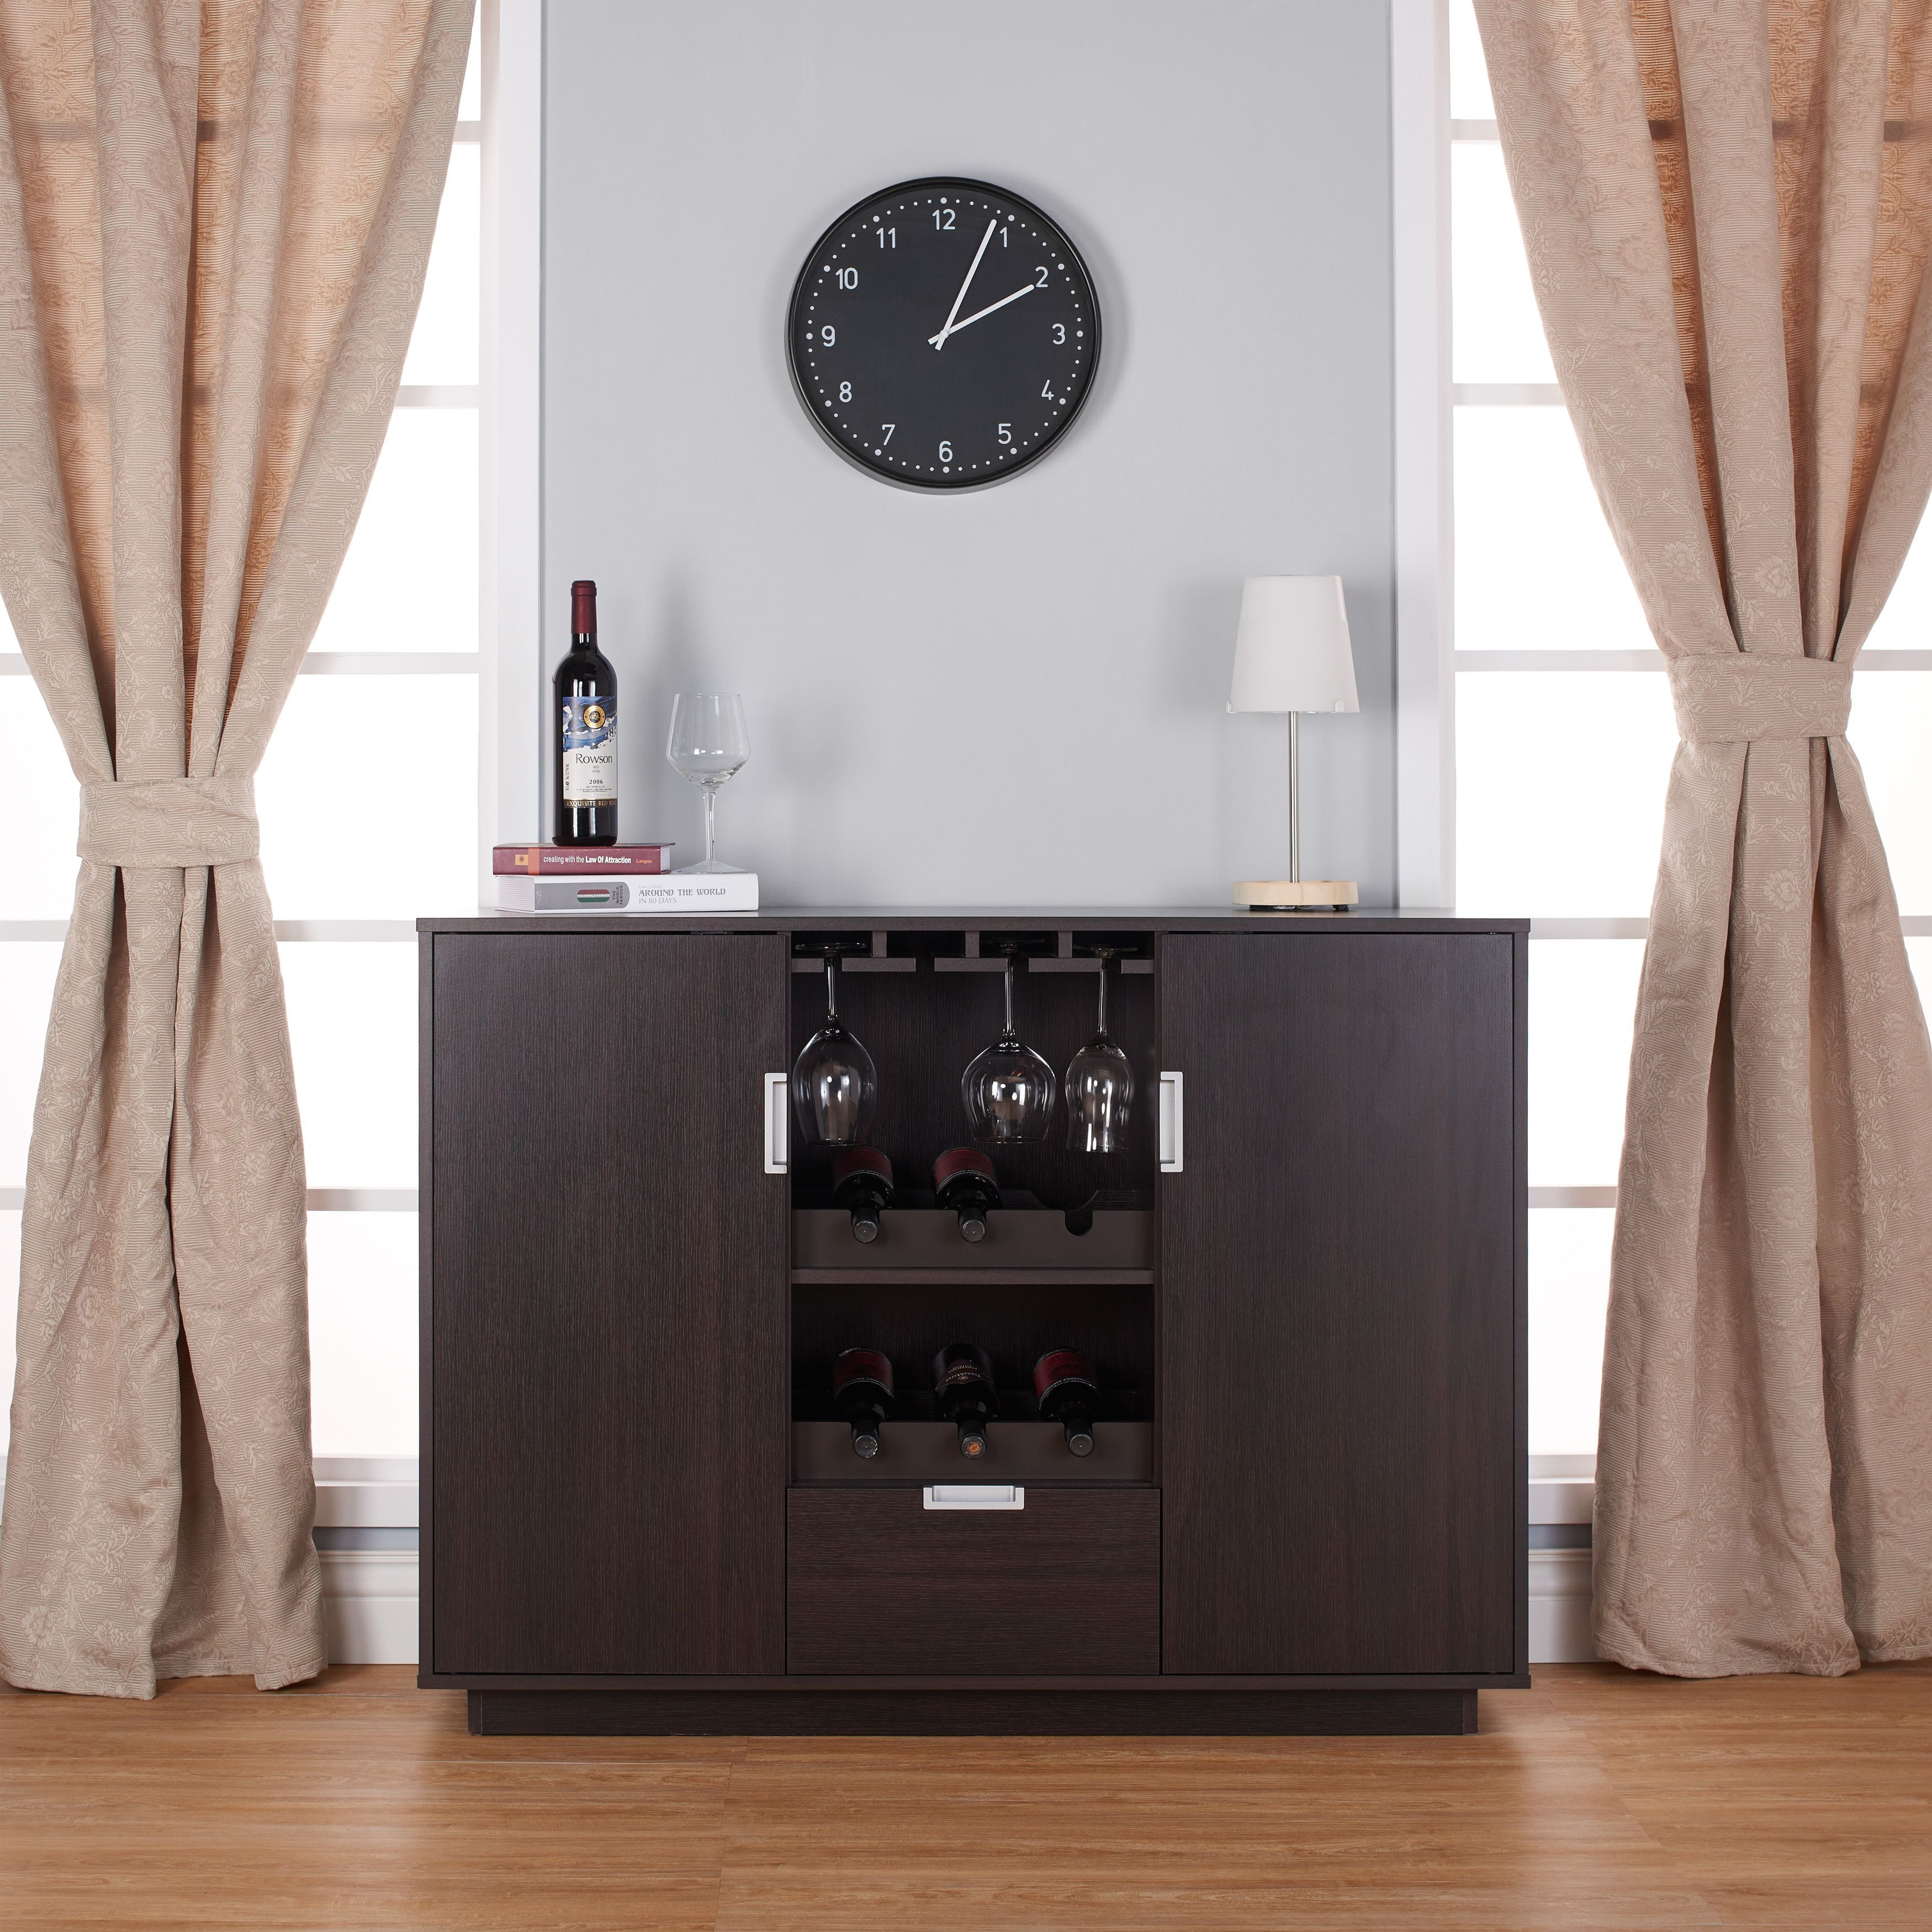 Make The Most Of Your Dining Space With This Expansive Buffet Server Store Anything From